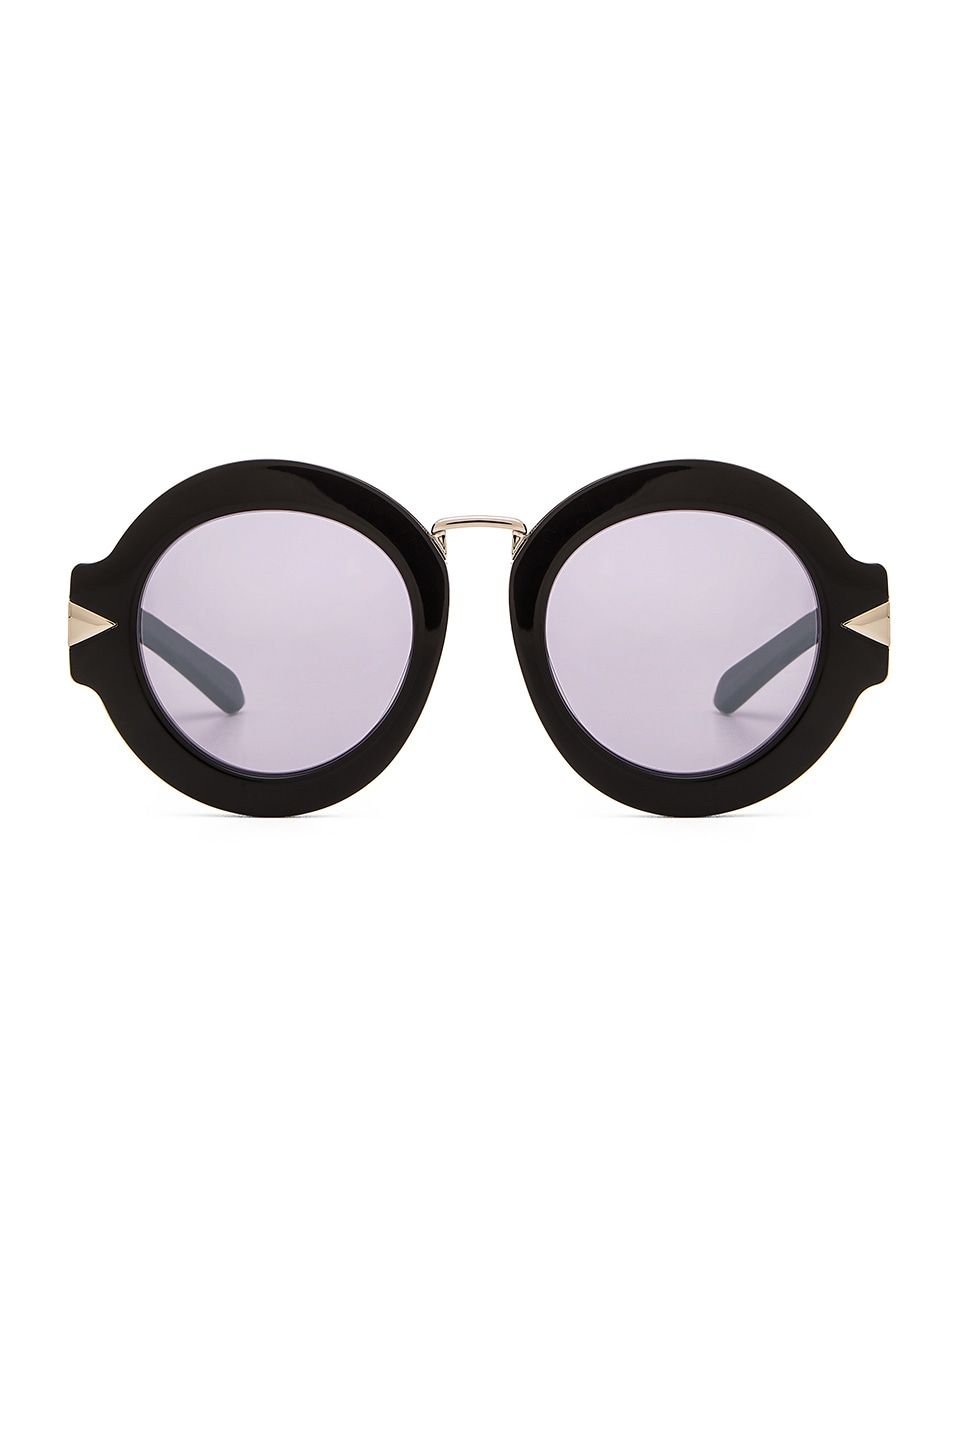 Karen Walker Superstars Maze in Black & Silver Mirror